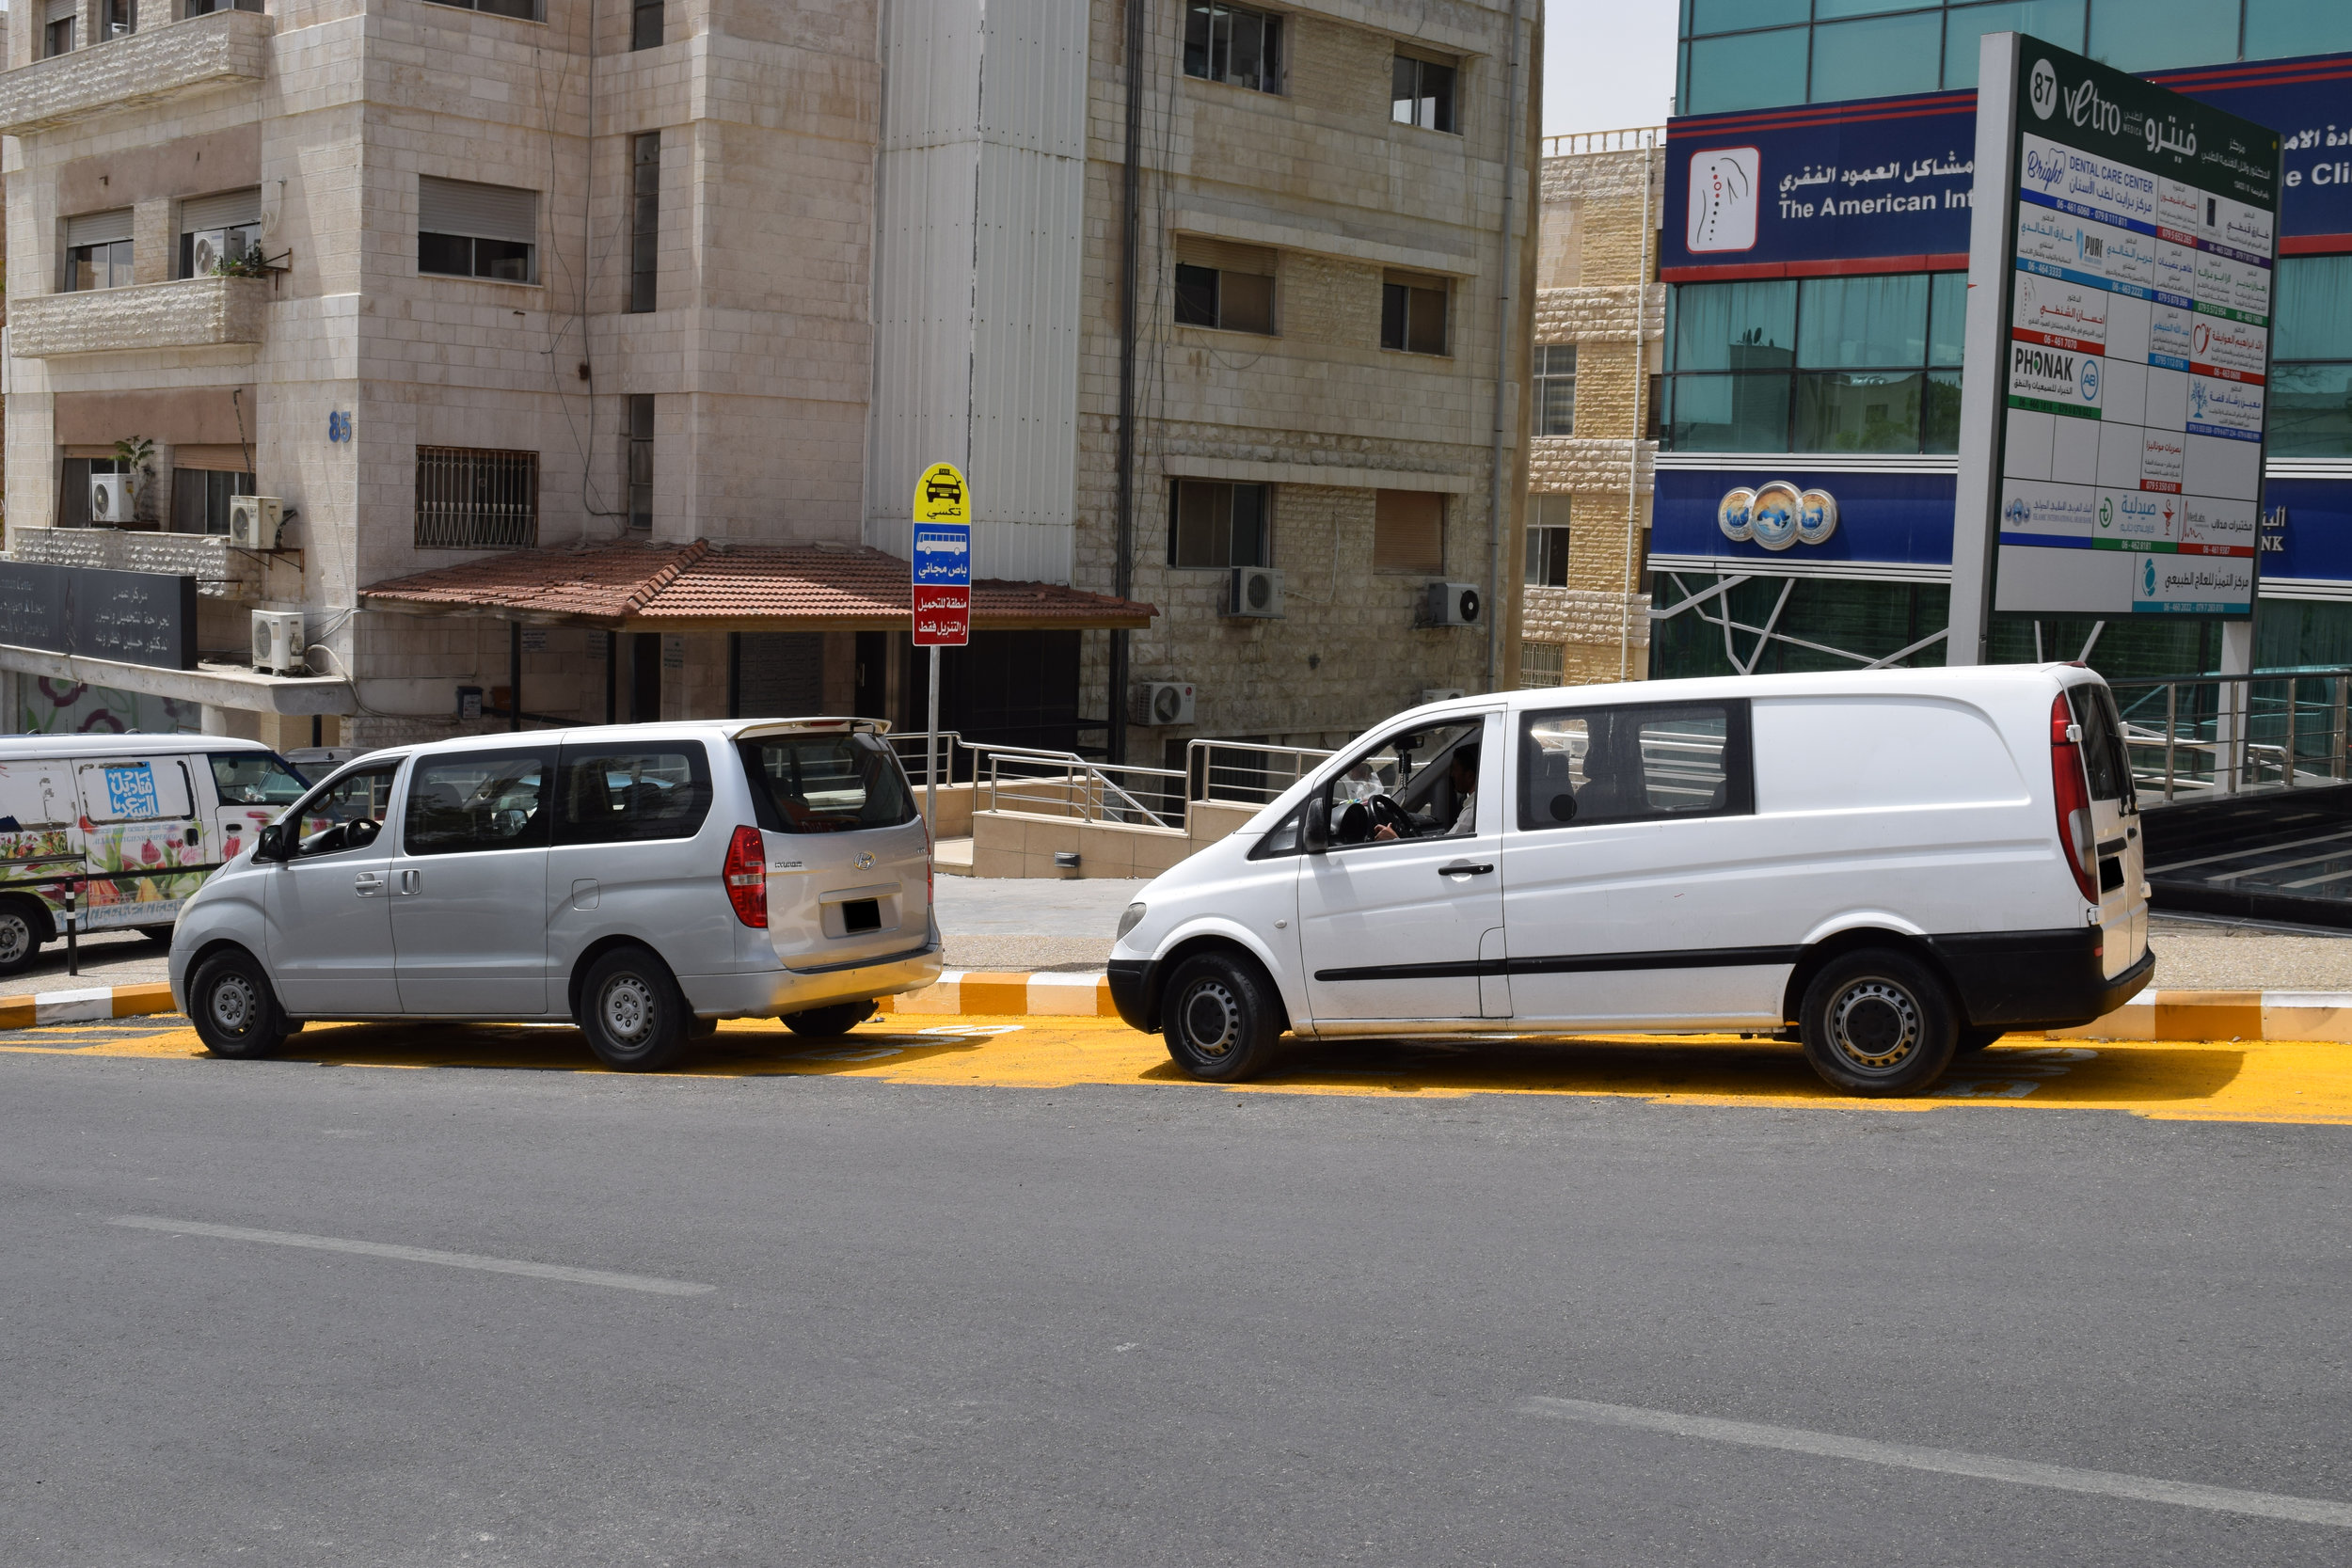 Two vans parked in a taxi parking zone.